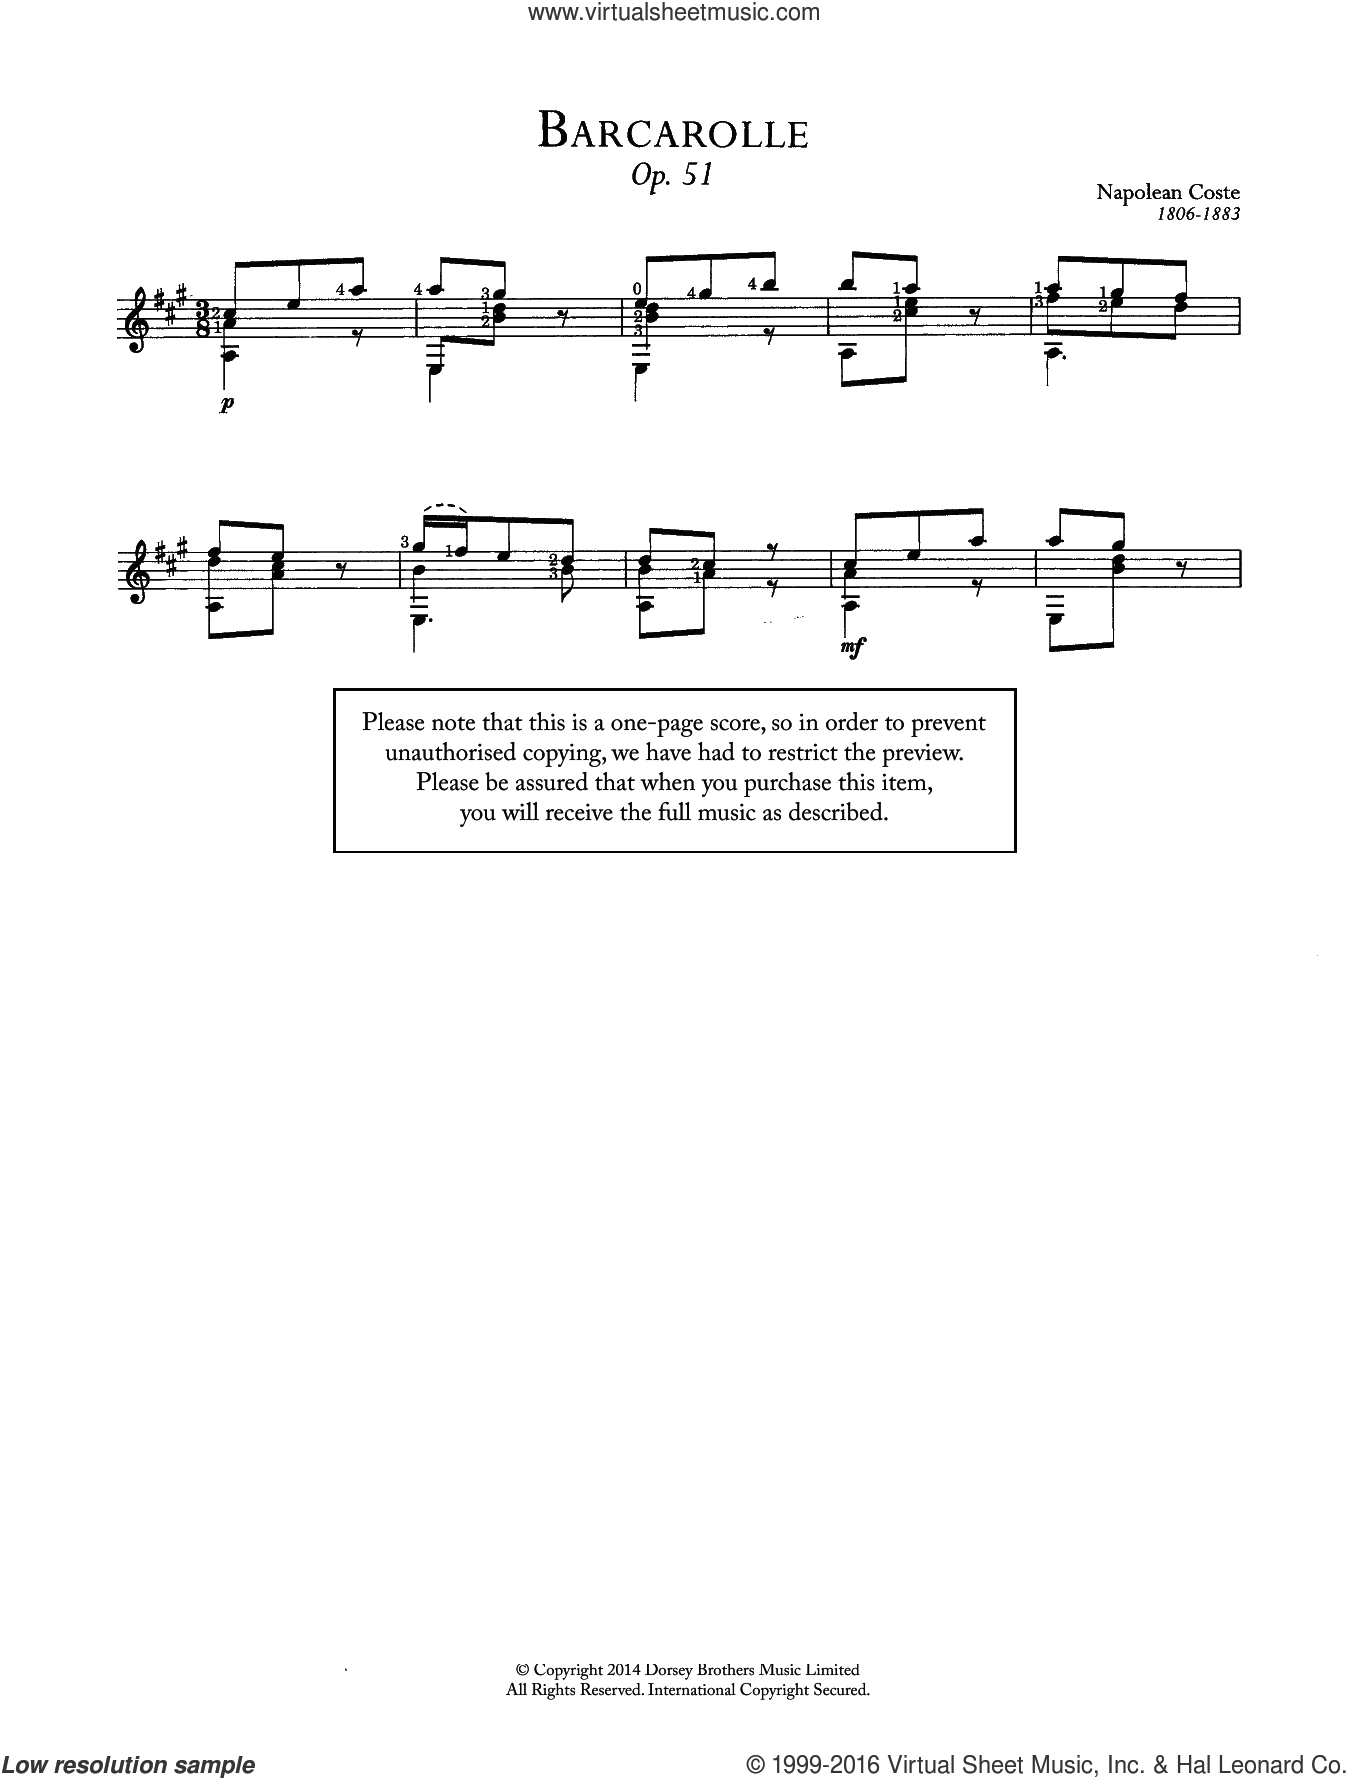 Barcarolle, Op.51 sheet music for guitar solo (chords) by Napoleon Coste, classical score, easy guitar (chords). Score Image Preview.